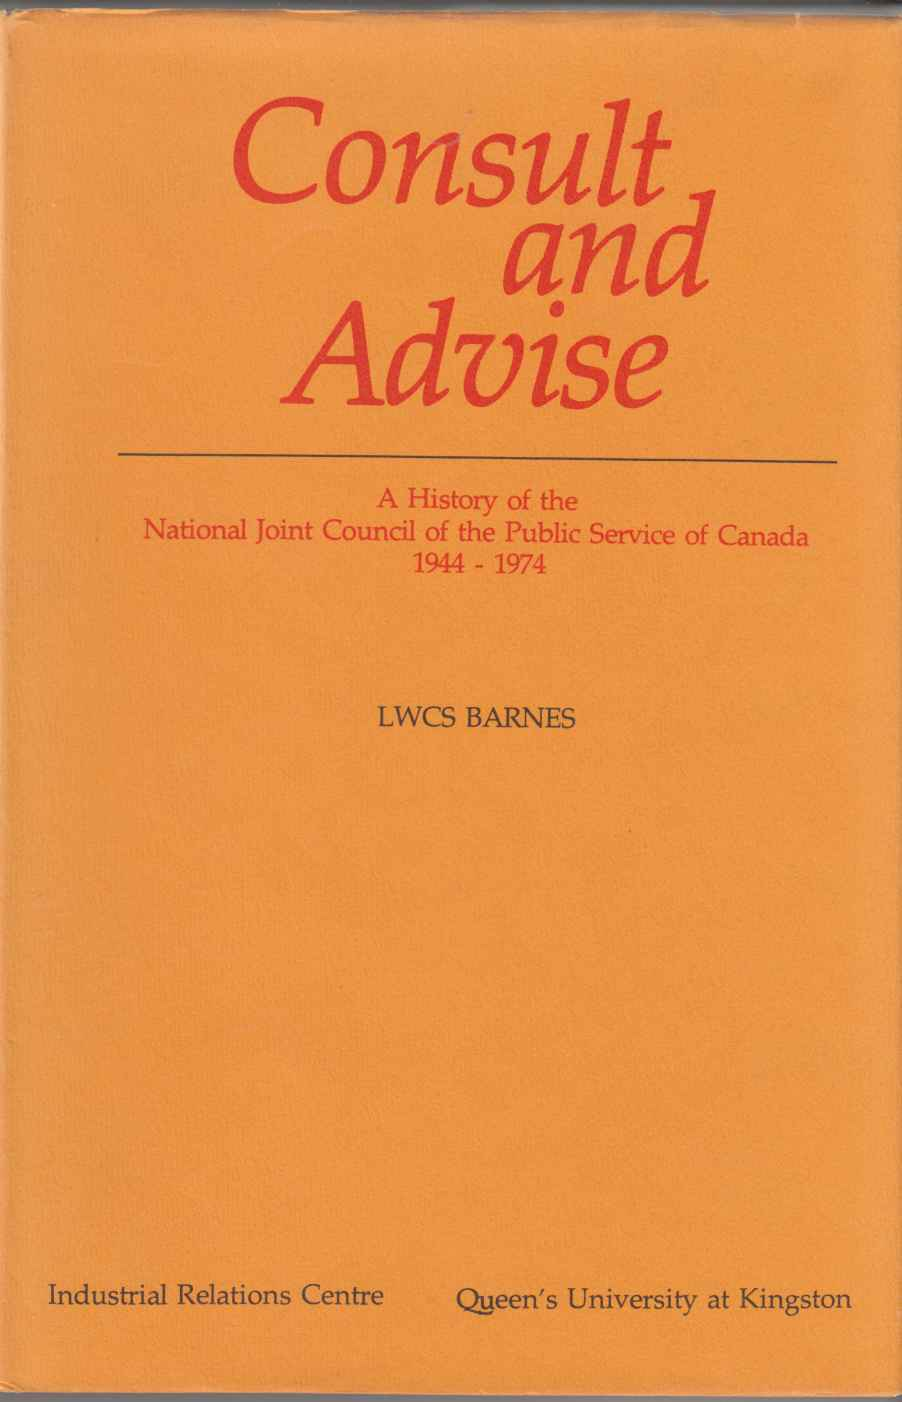 Image for Consult and Advise: A History of the National Joint Council of the Public Service of Canada, 1944-1974